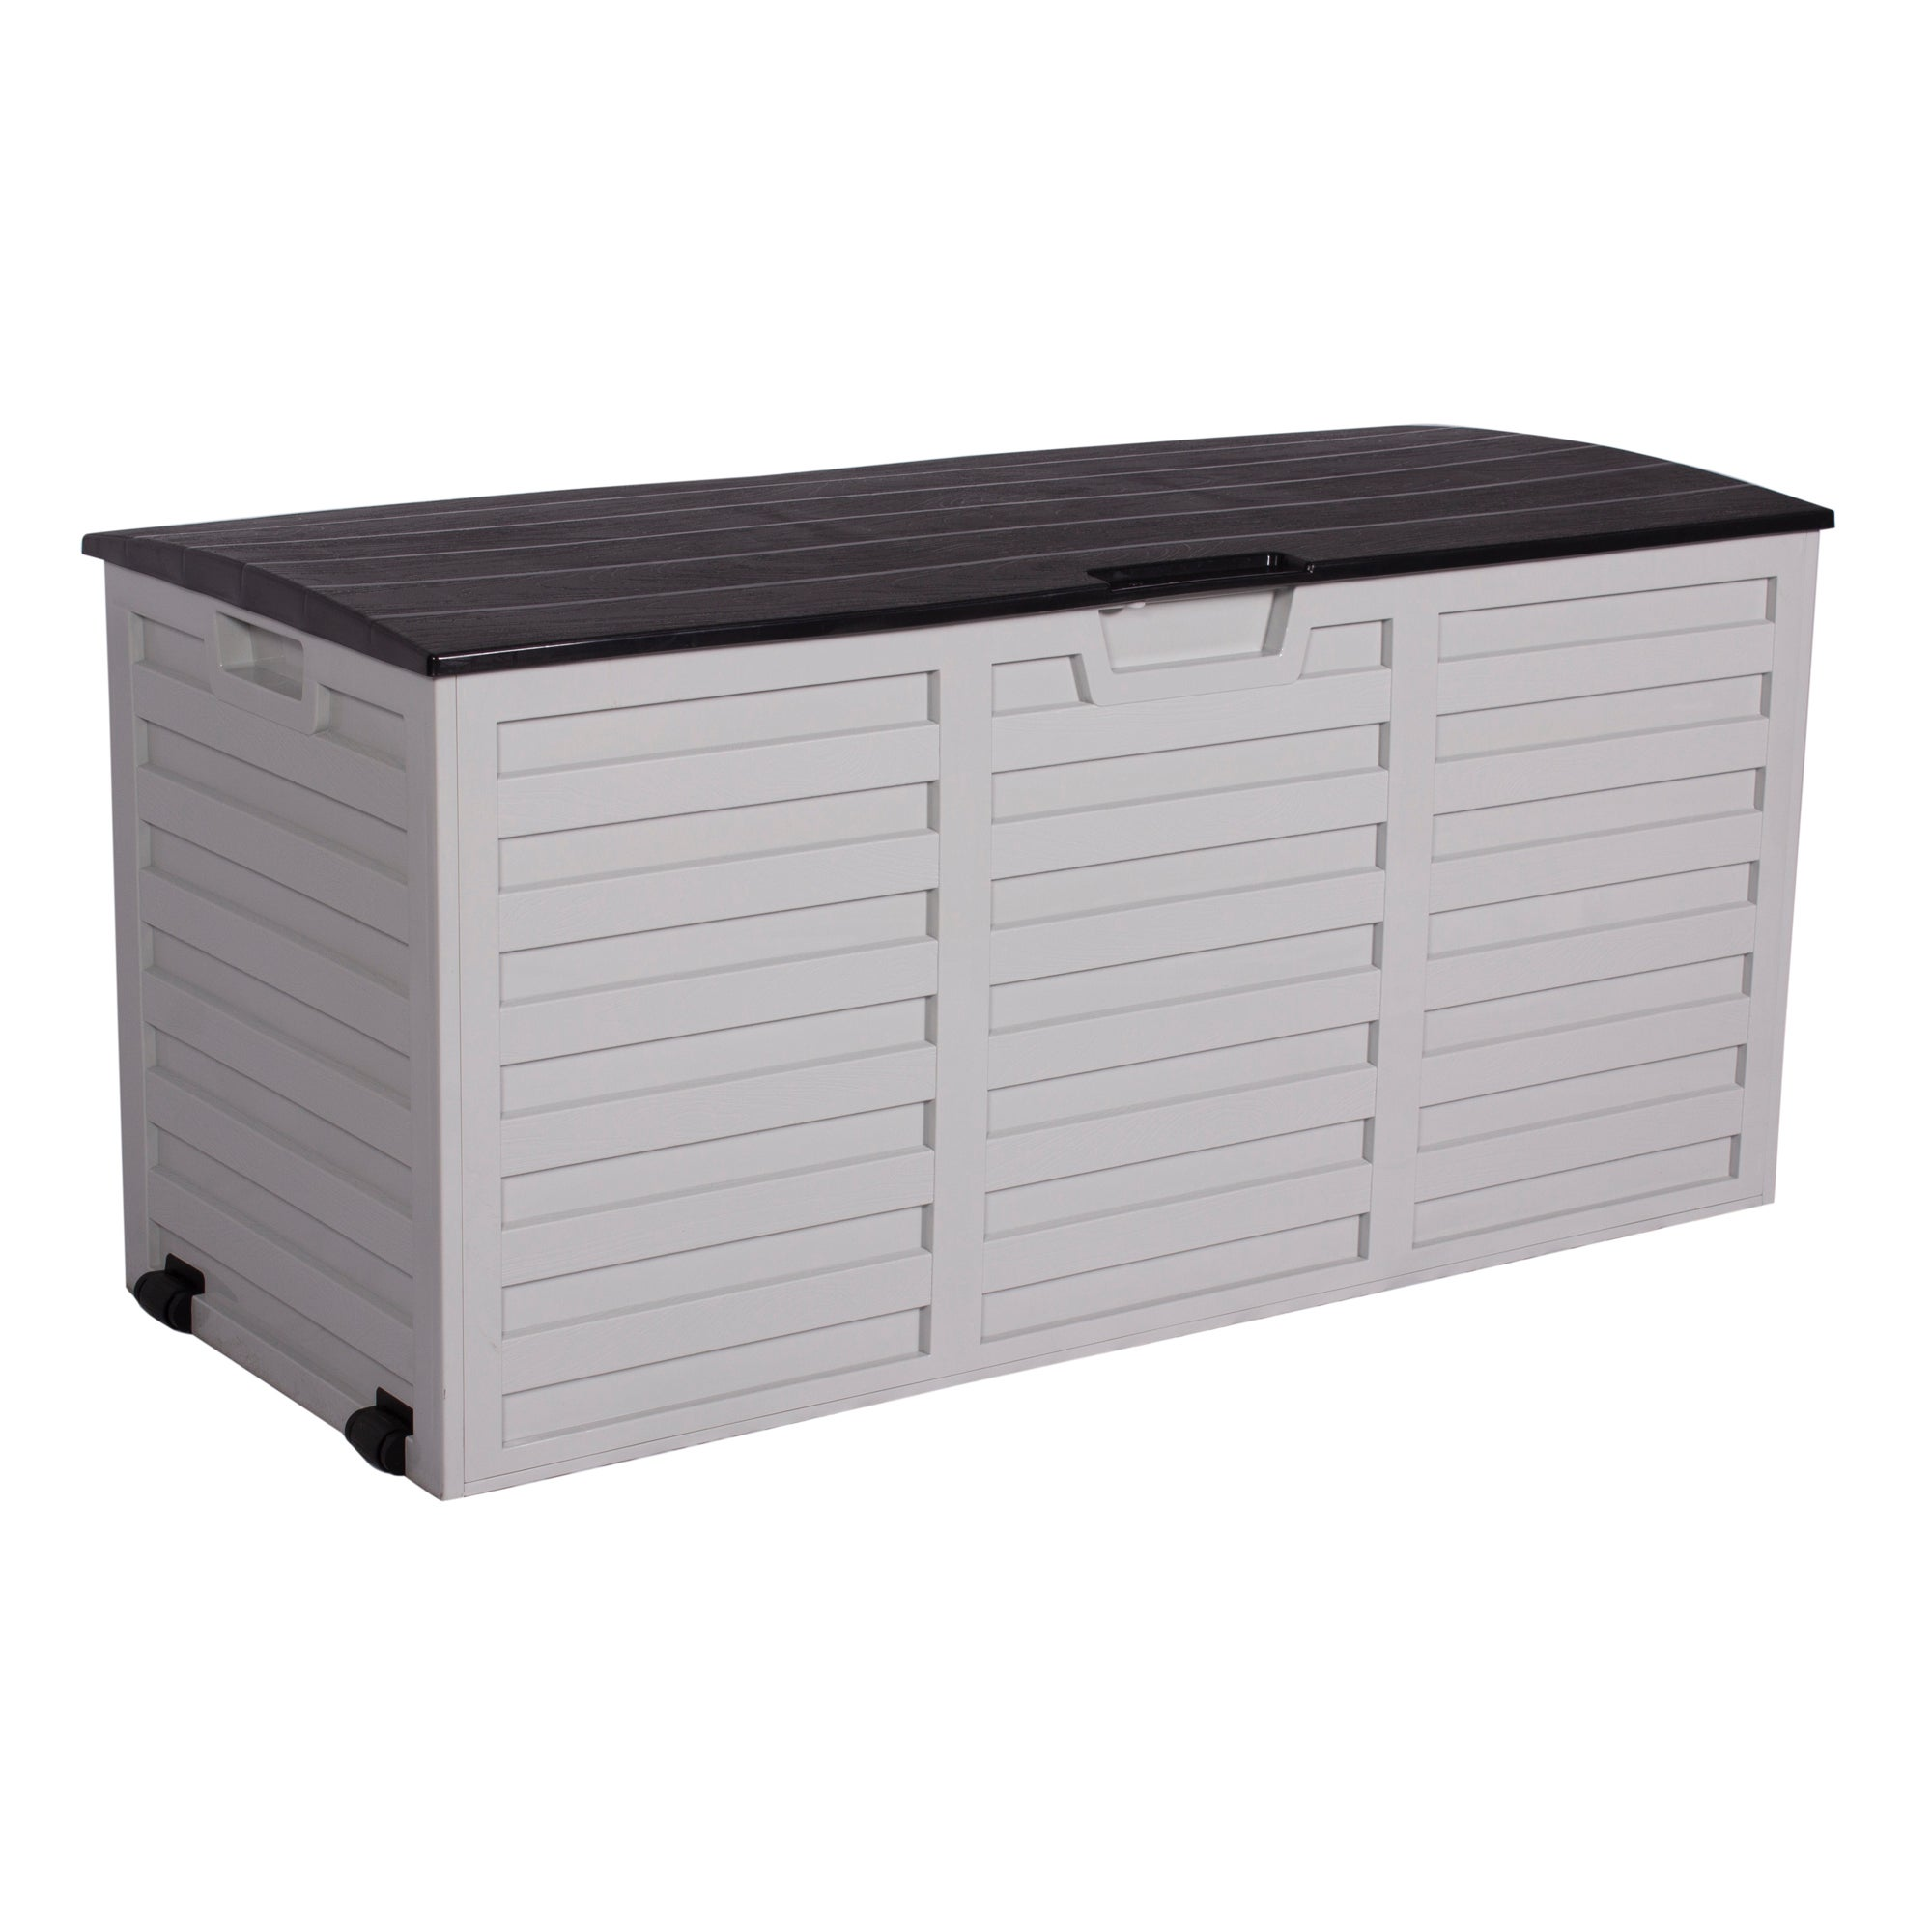 Dunelm White and Black Waterproof Outdoor Storage Box with Wheels White